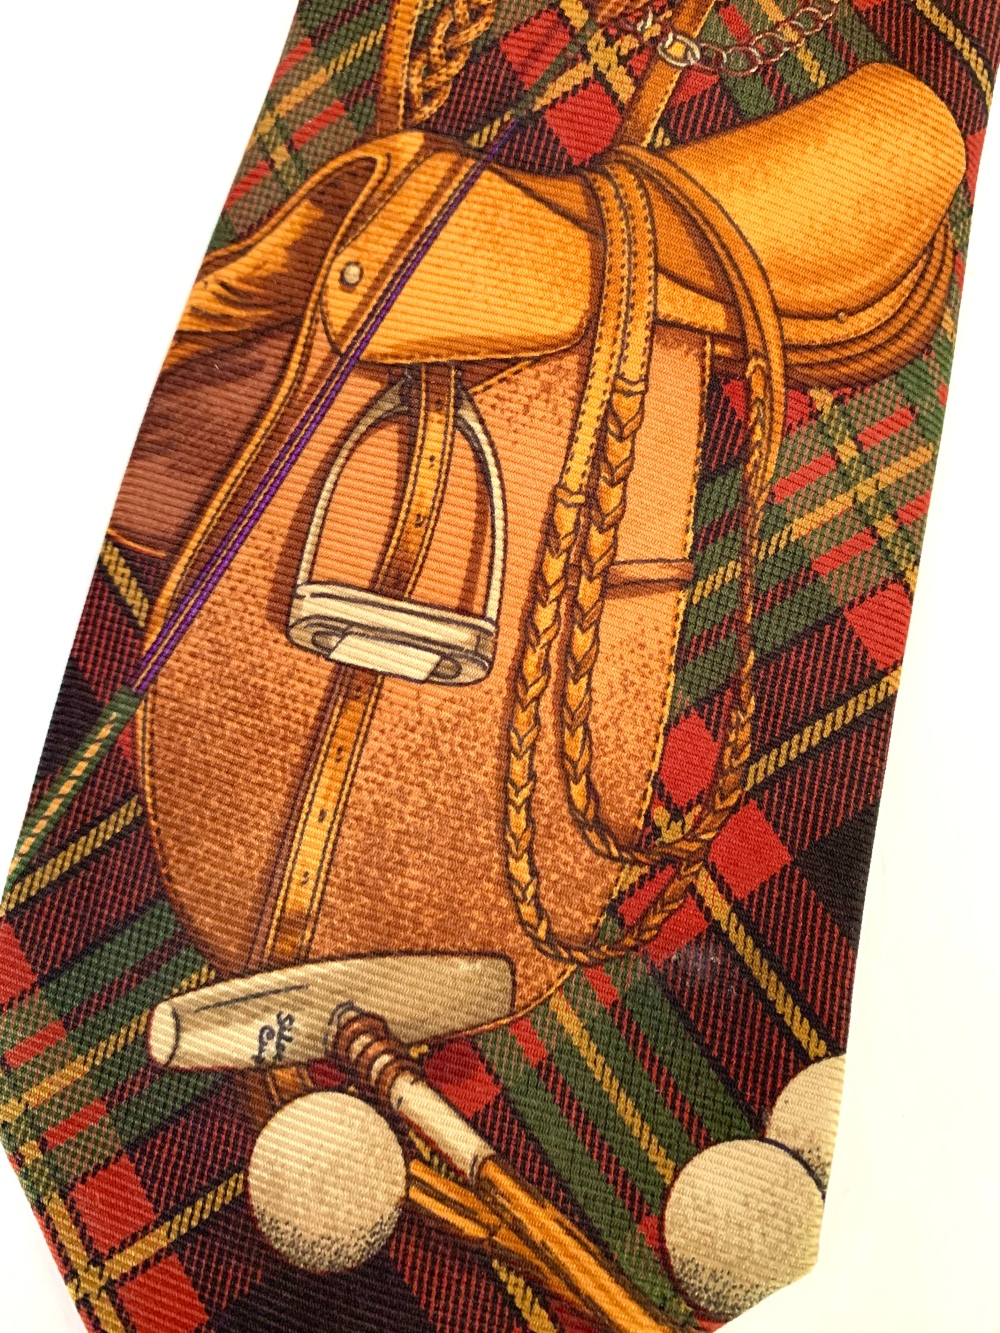 Equestrian Print on Vintage Polo Tie